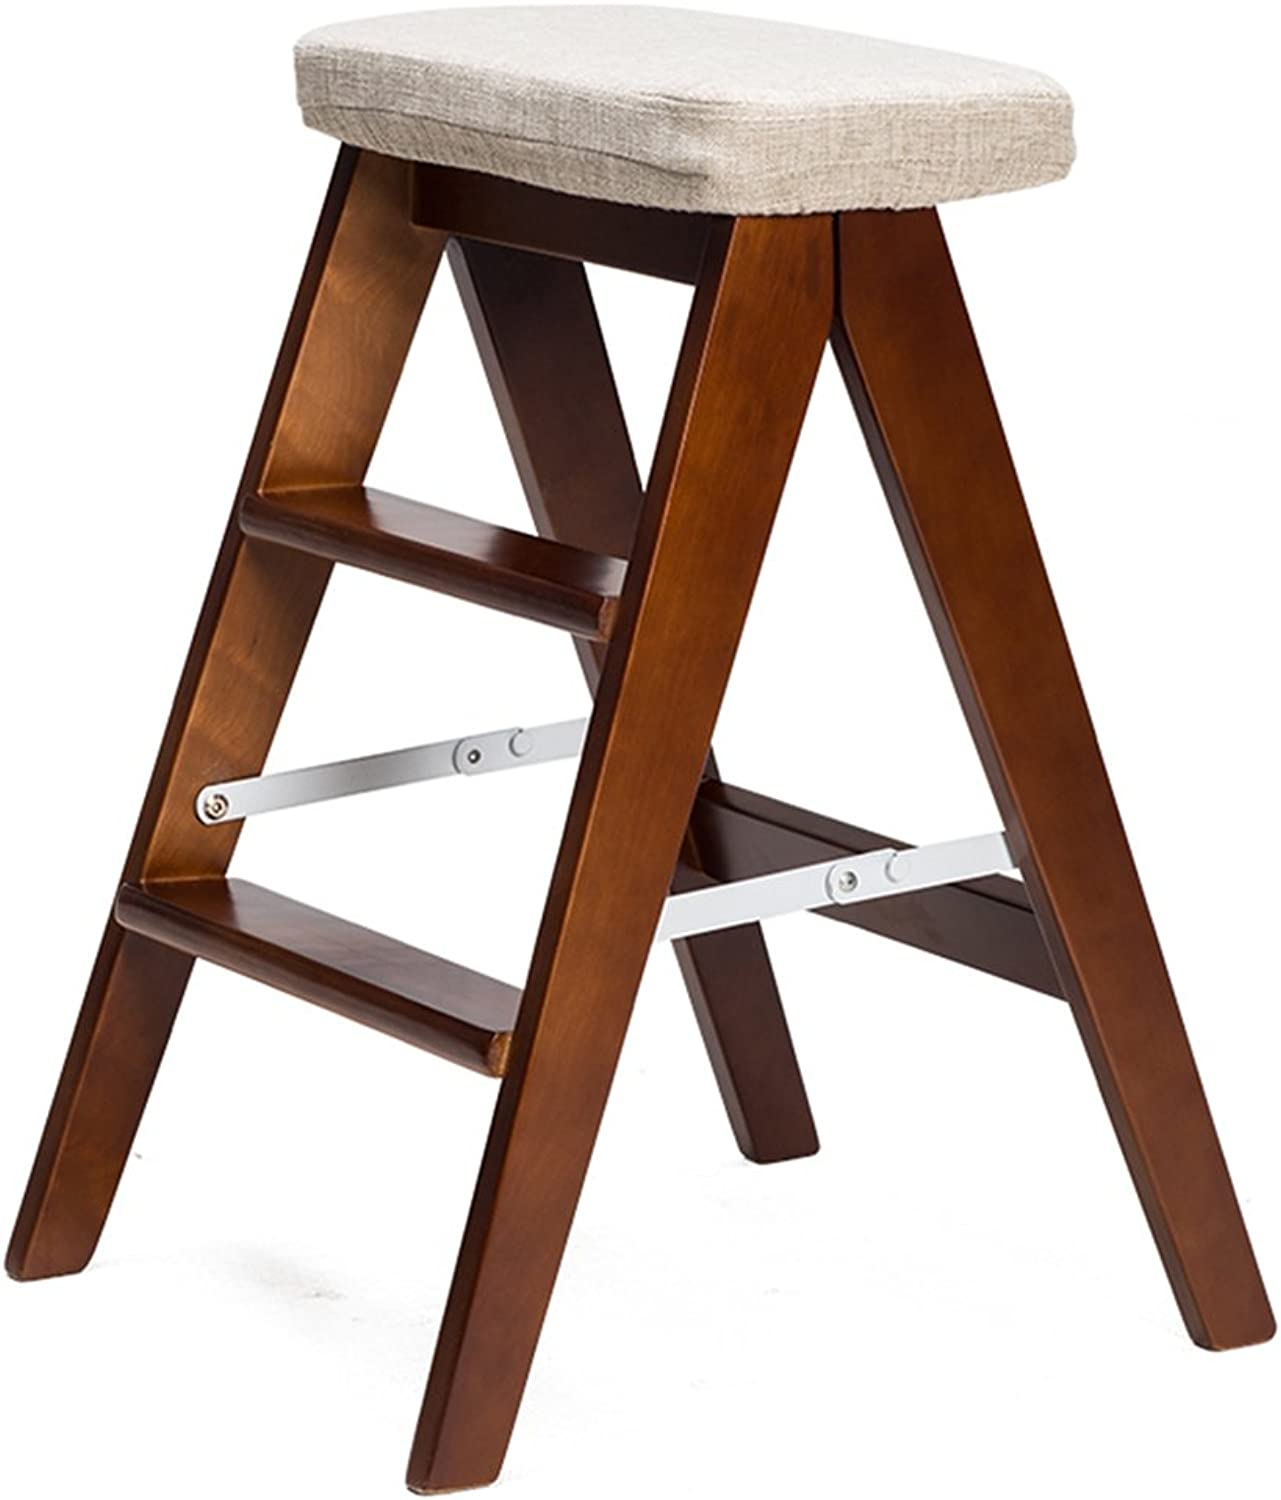 WSSF- Folding Solid Wood Ladder Stool Simple Portable Small Non-slip Treads Stepladder Stool Creative Furniture Garden & Kitchen Stool Chairs Household Multi-function Bench color Optional, 392059cm